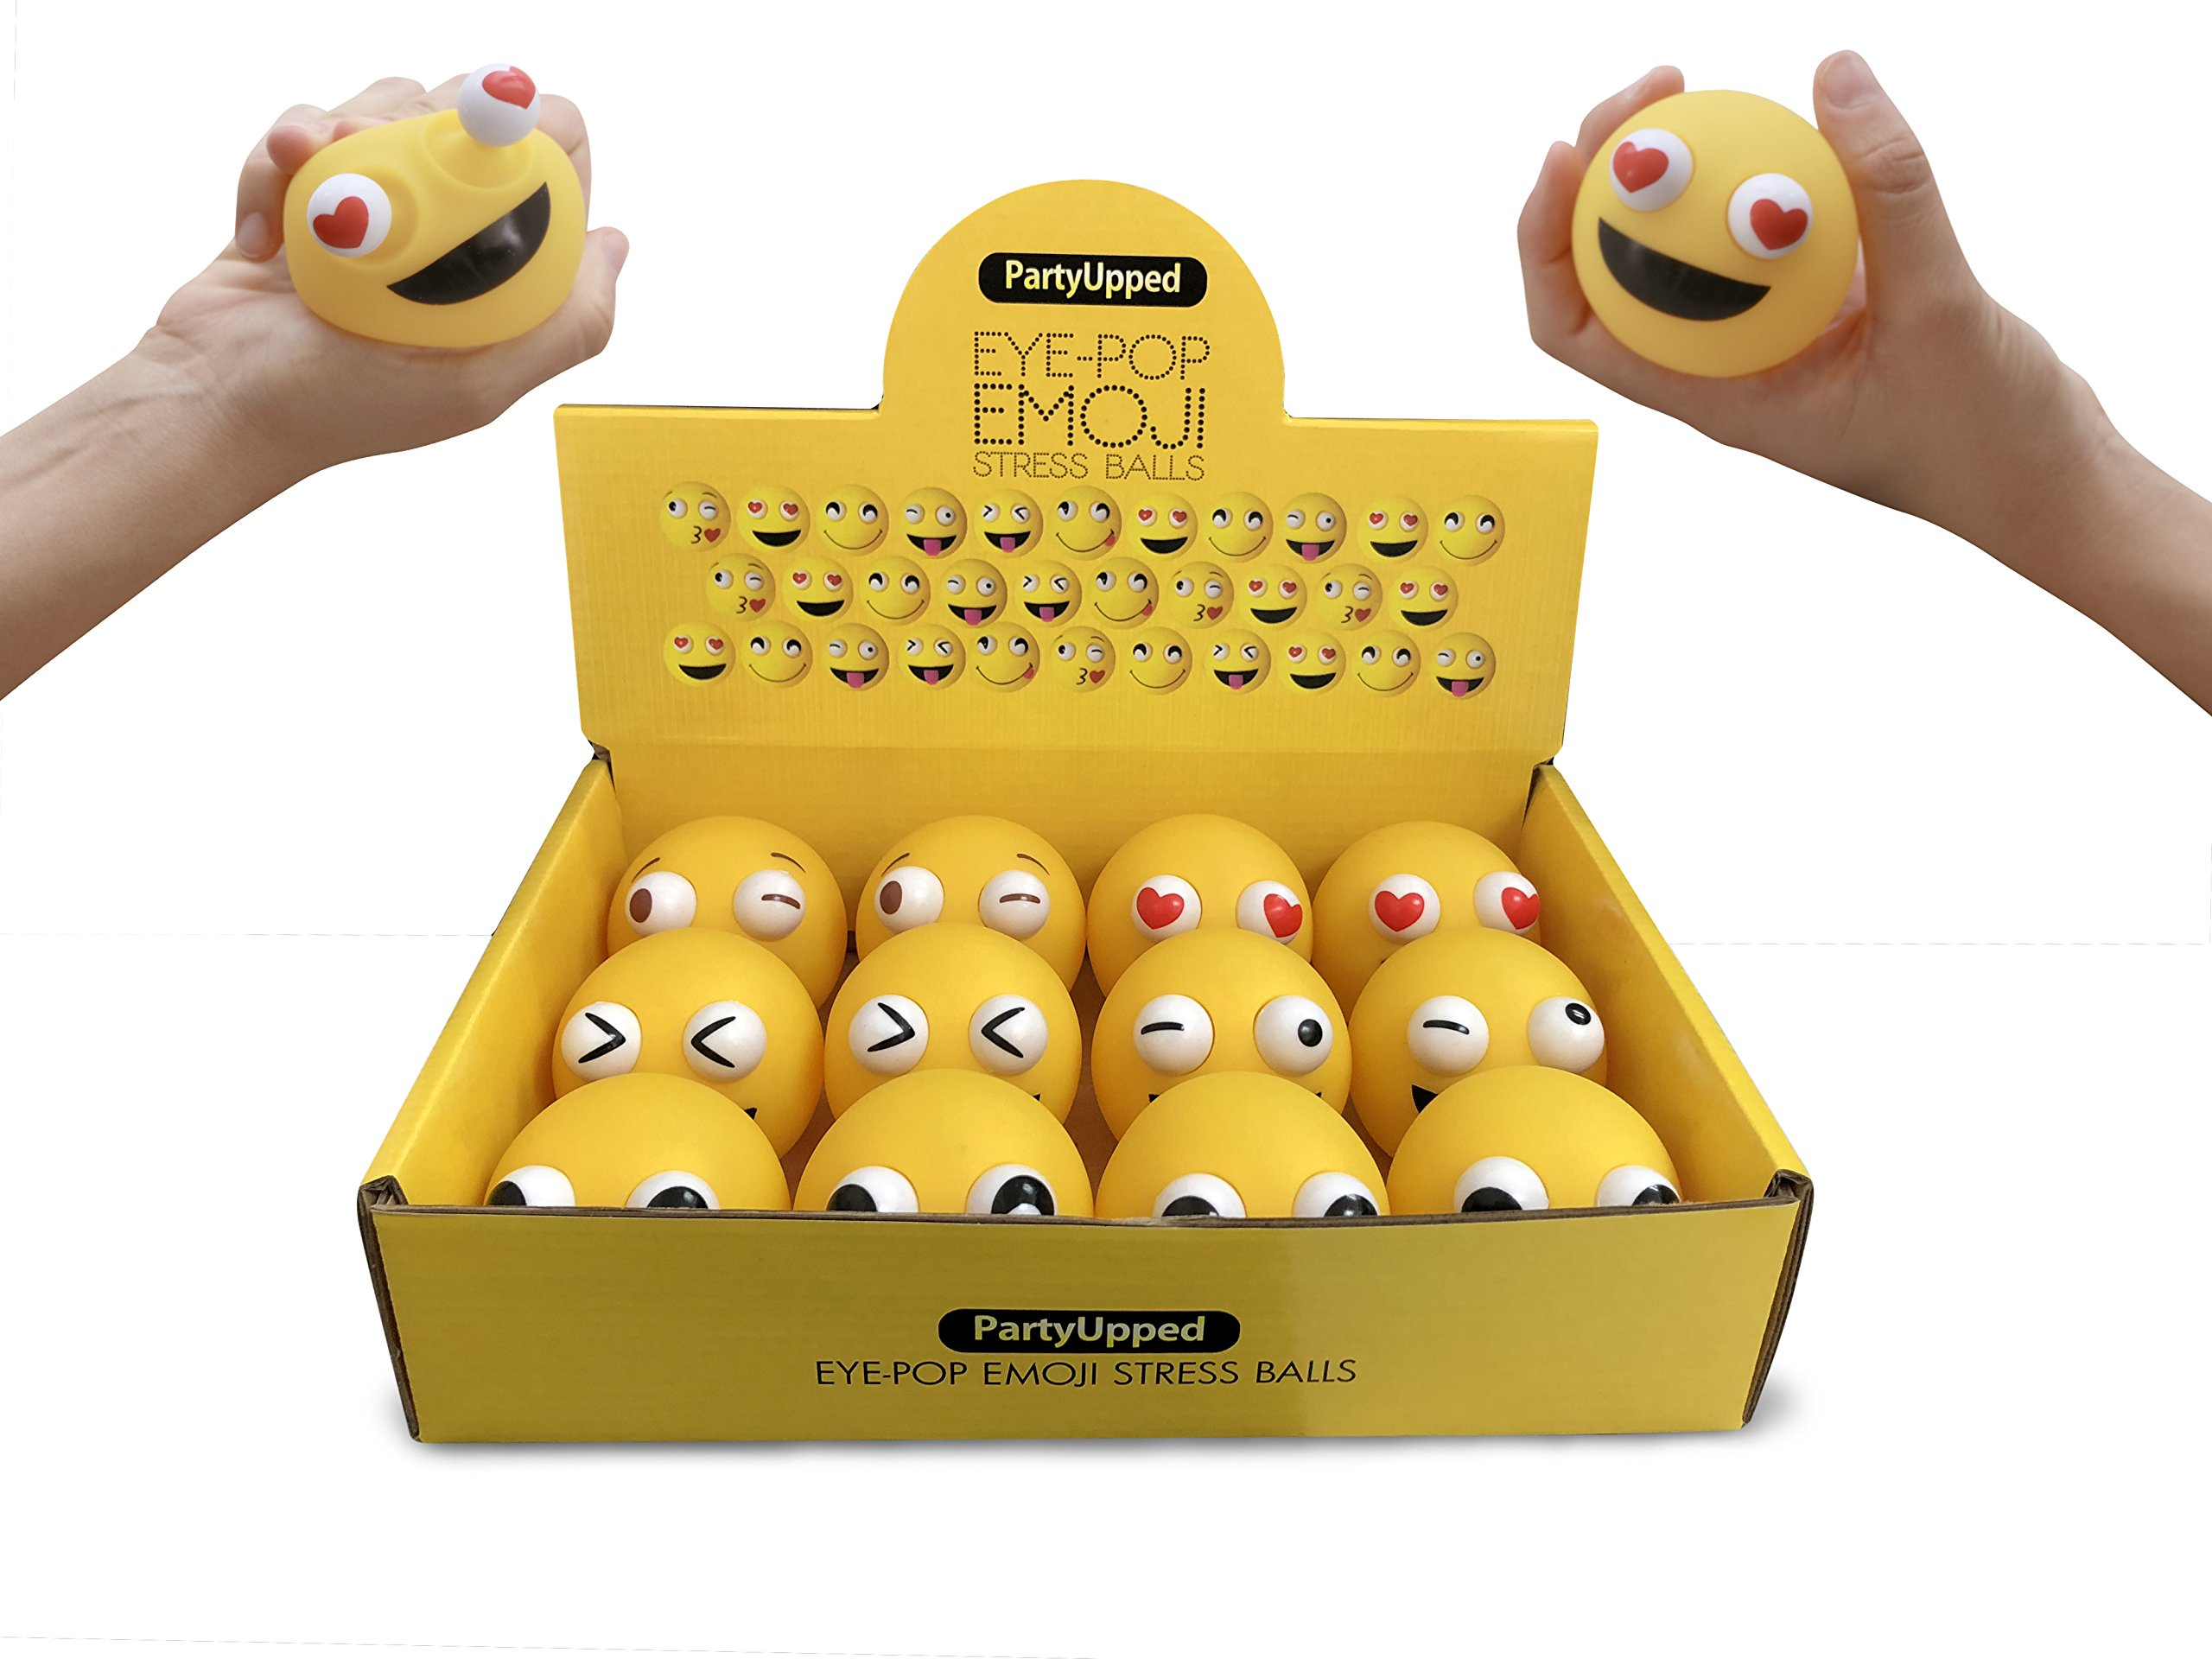 """PartyUpped Emoji Stress Balls Eye-Pop (12-Pack) 2.35"""" Fun, Squishy Stress, Tension, Anxiety Relief 